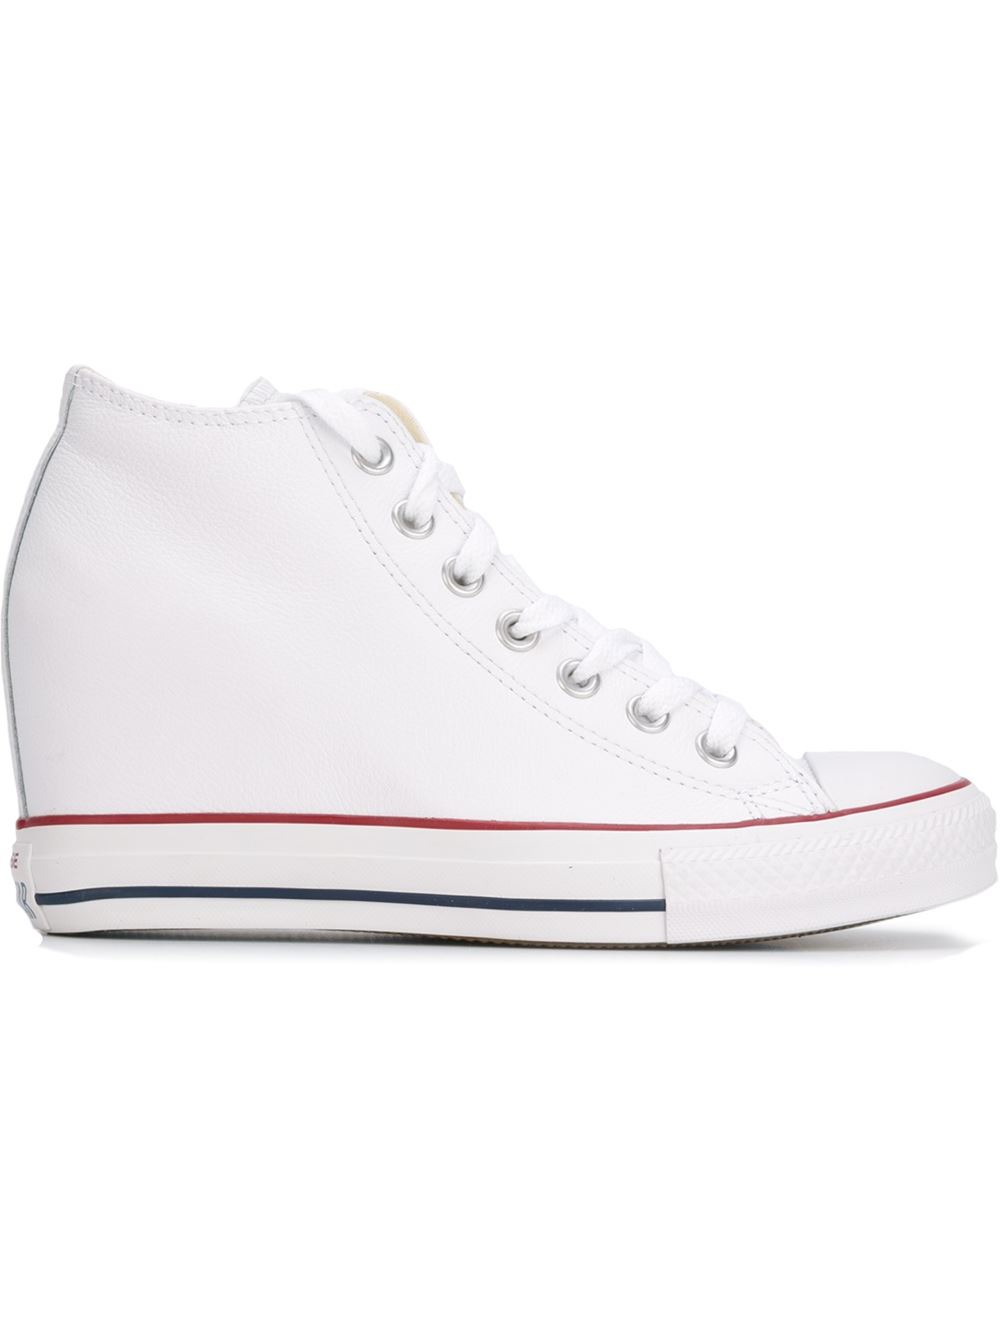 190395abedf Gallery. Previously sold at  Farfetch · Women s Wedge Sneakers Women s  Converse Chuck Taylor ...